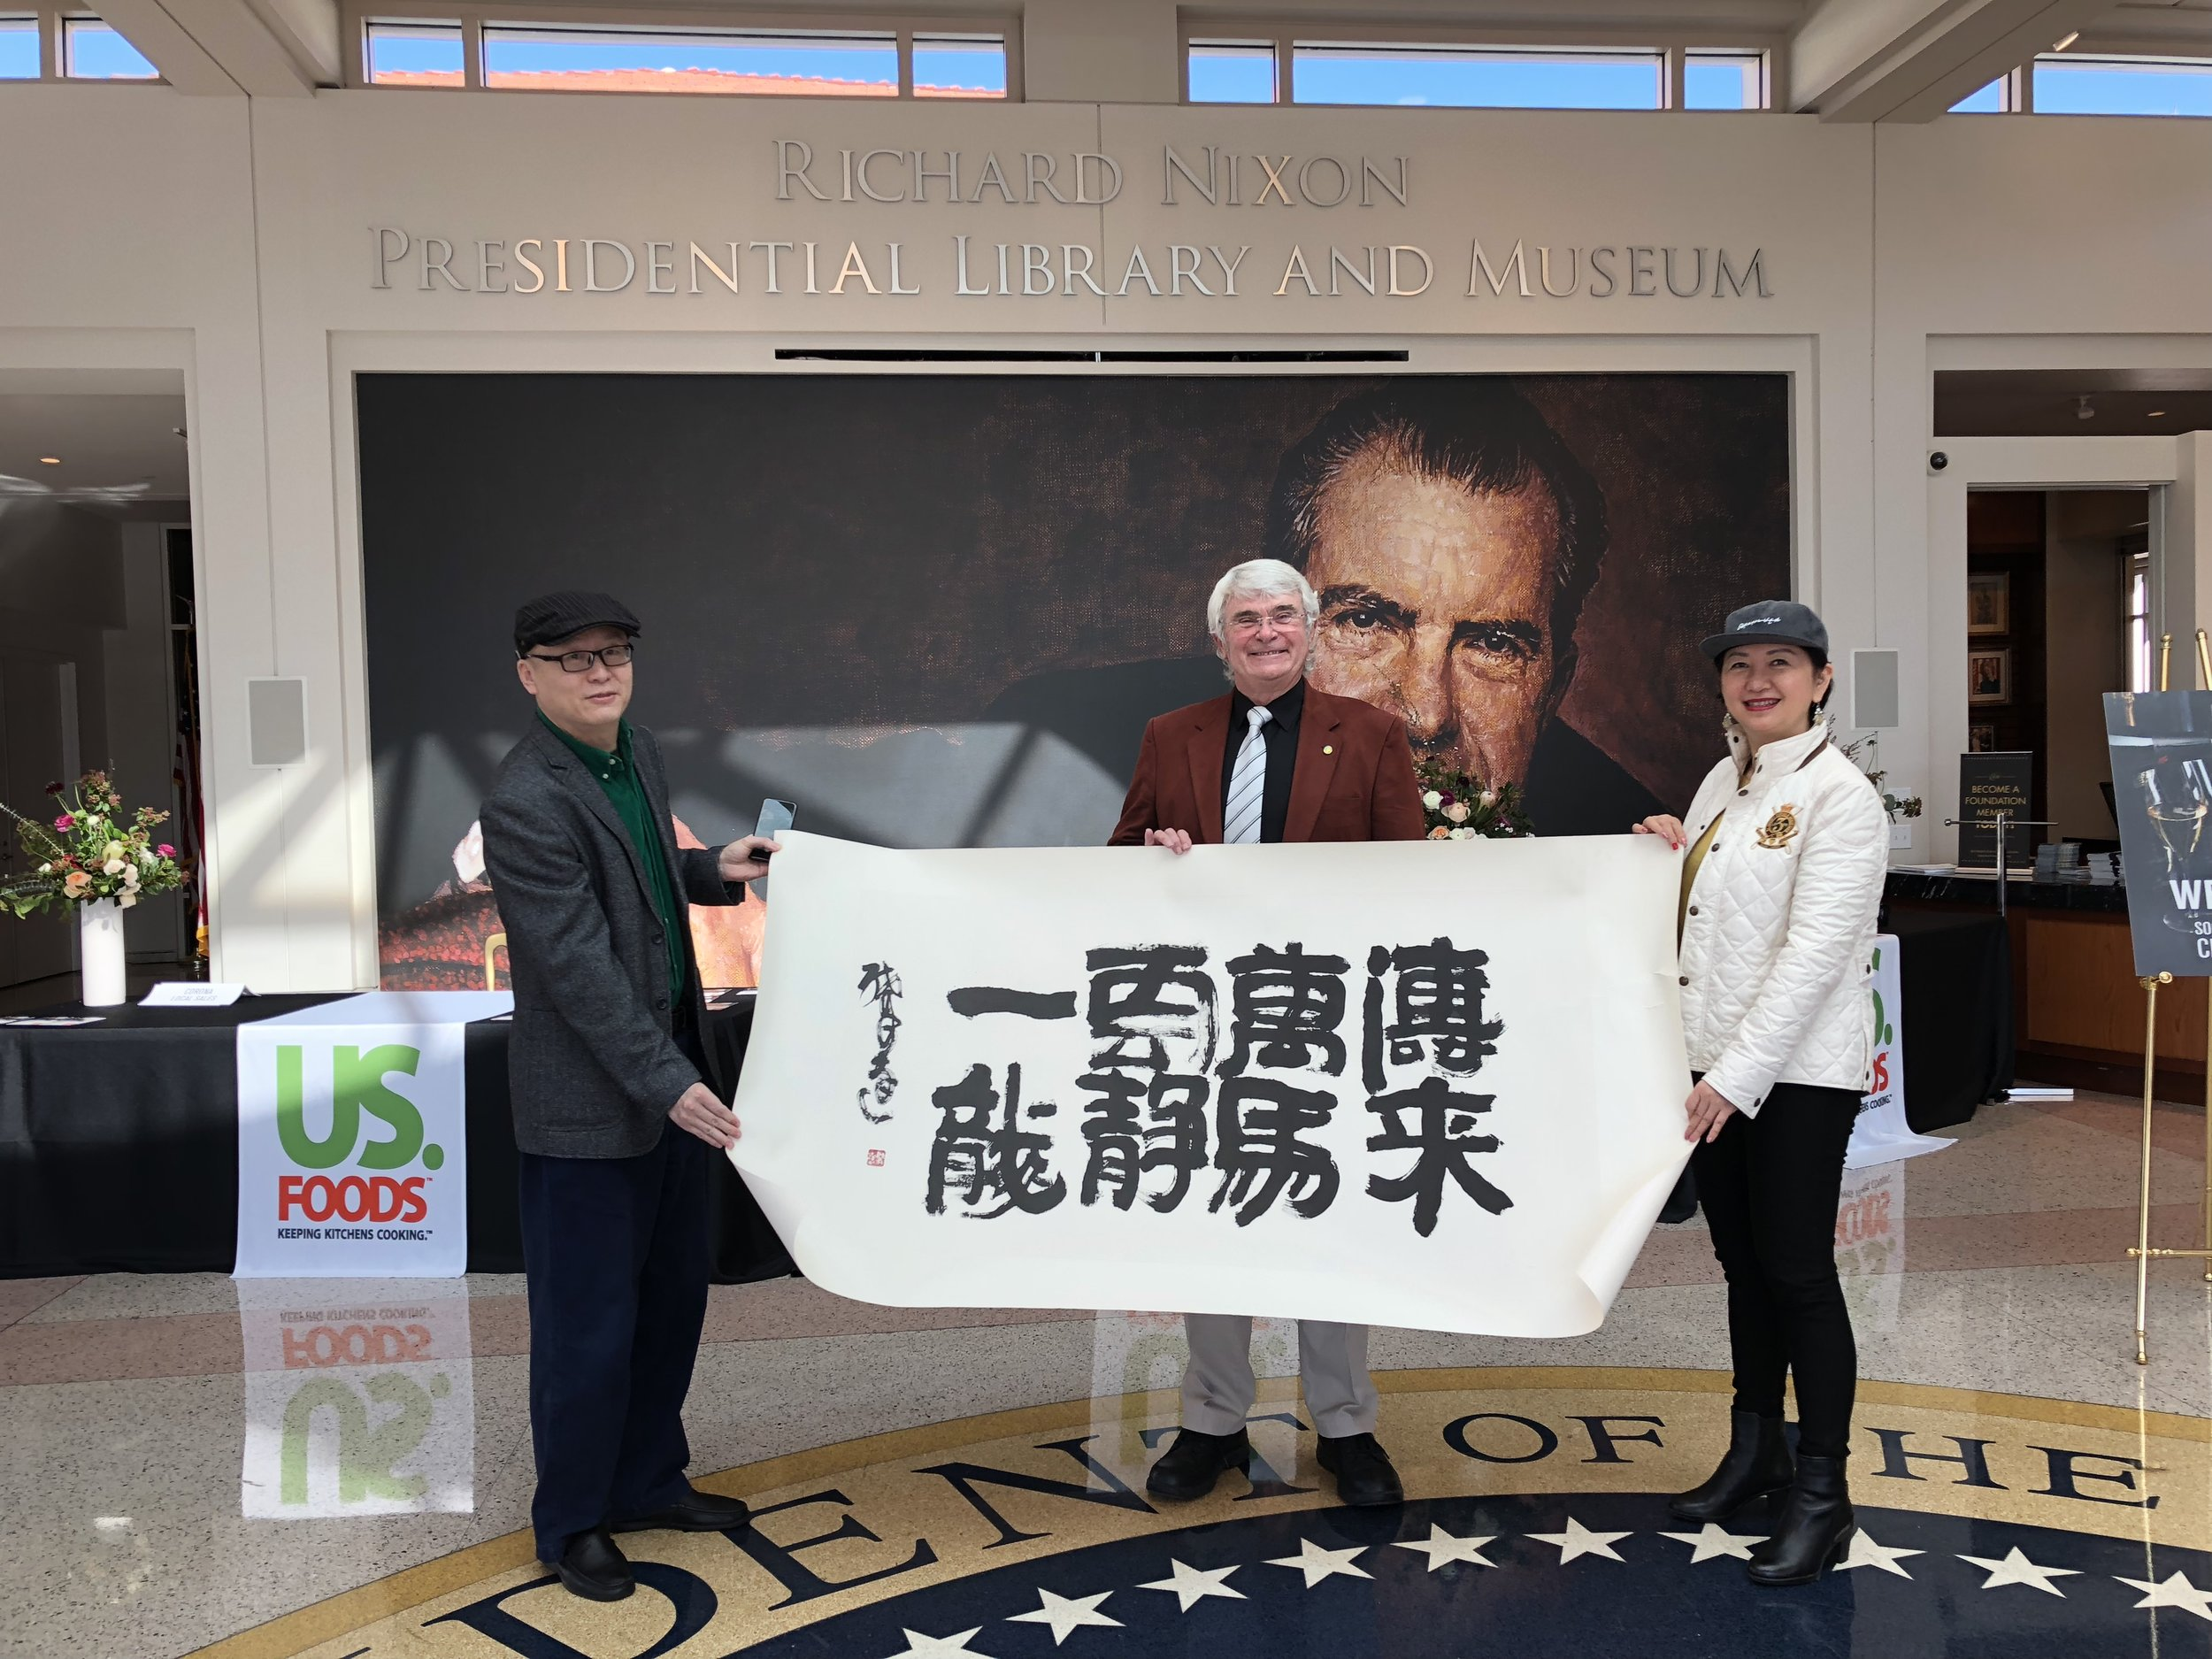 On behalf of Nixon family, Donald Nixon collected the calligraphy work by artist Mark Cheung